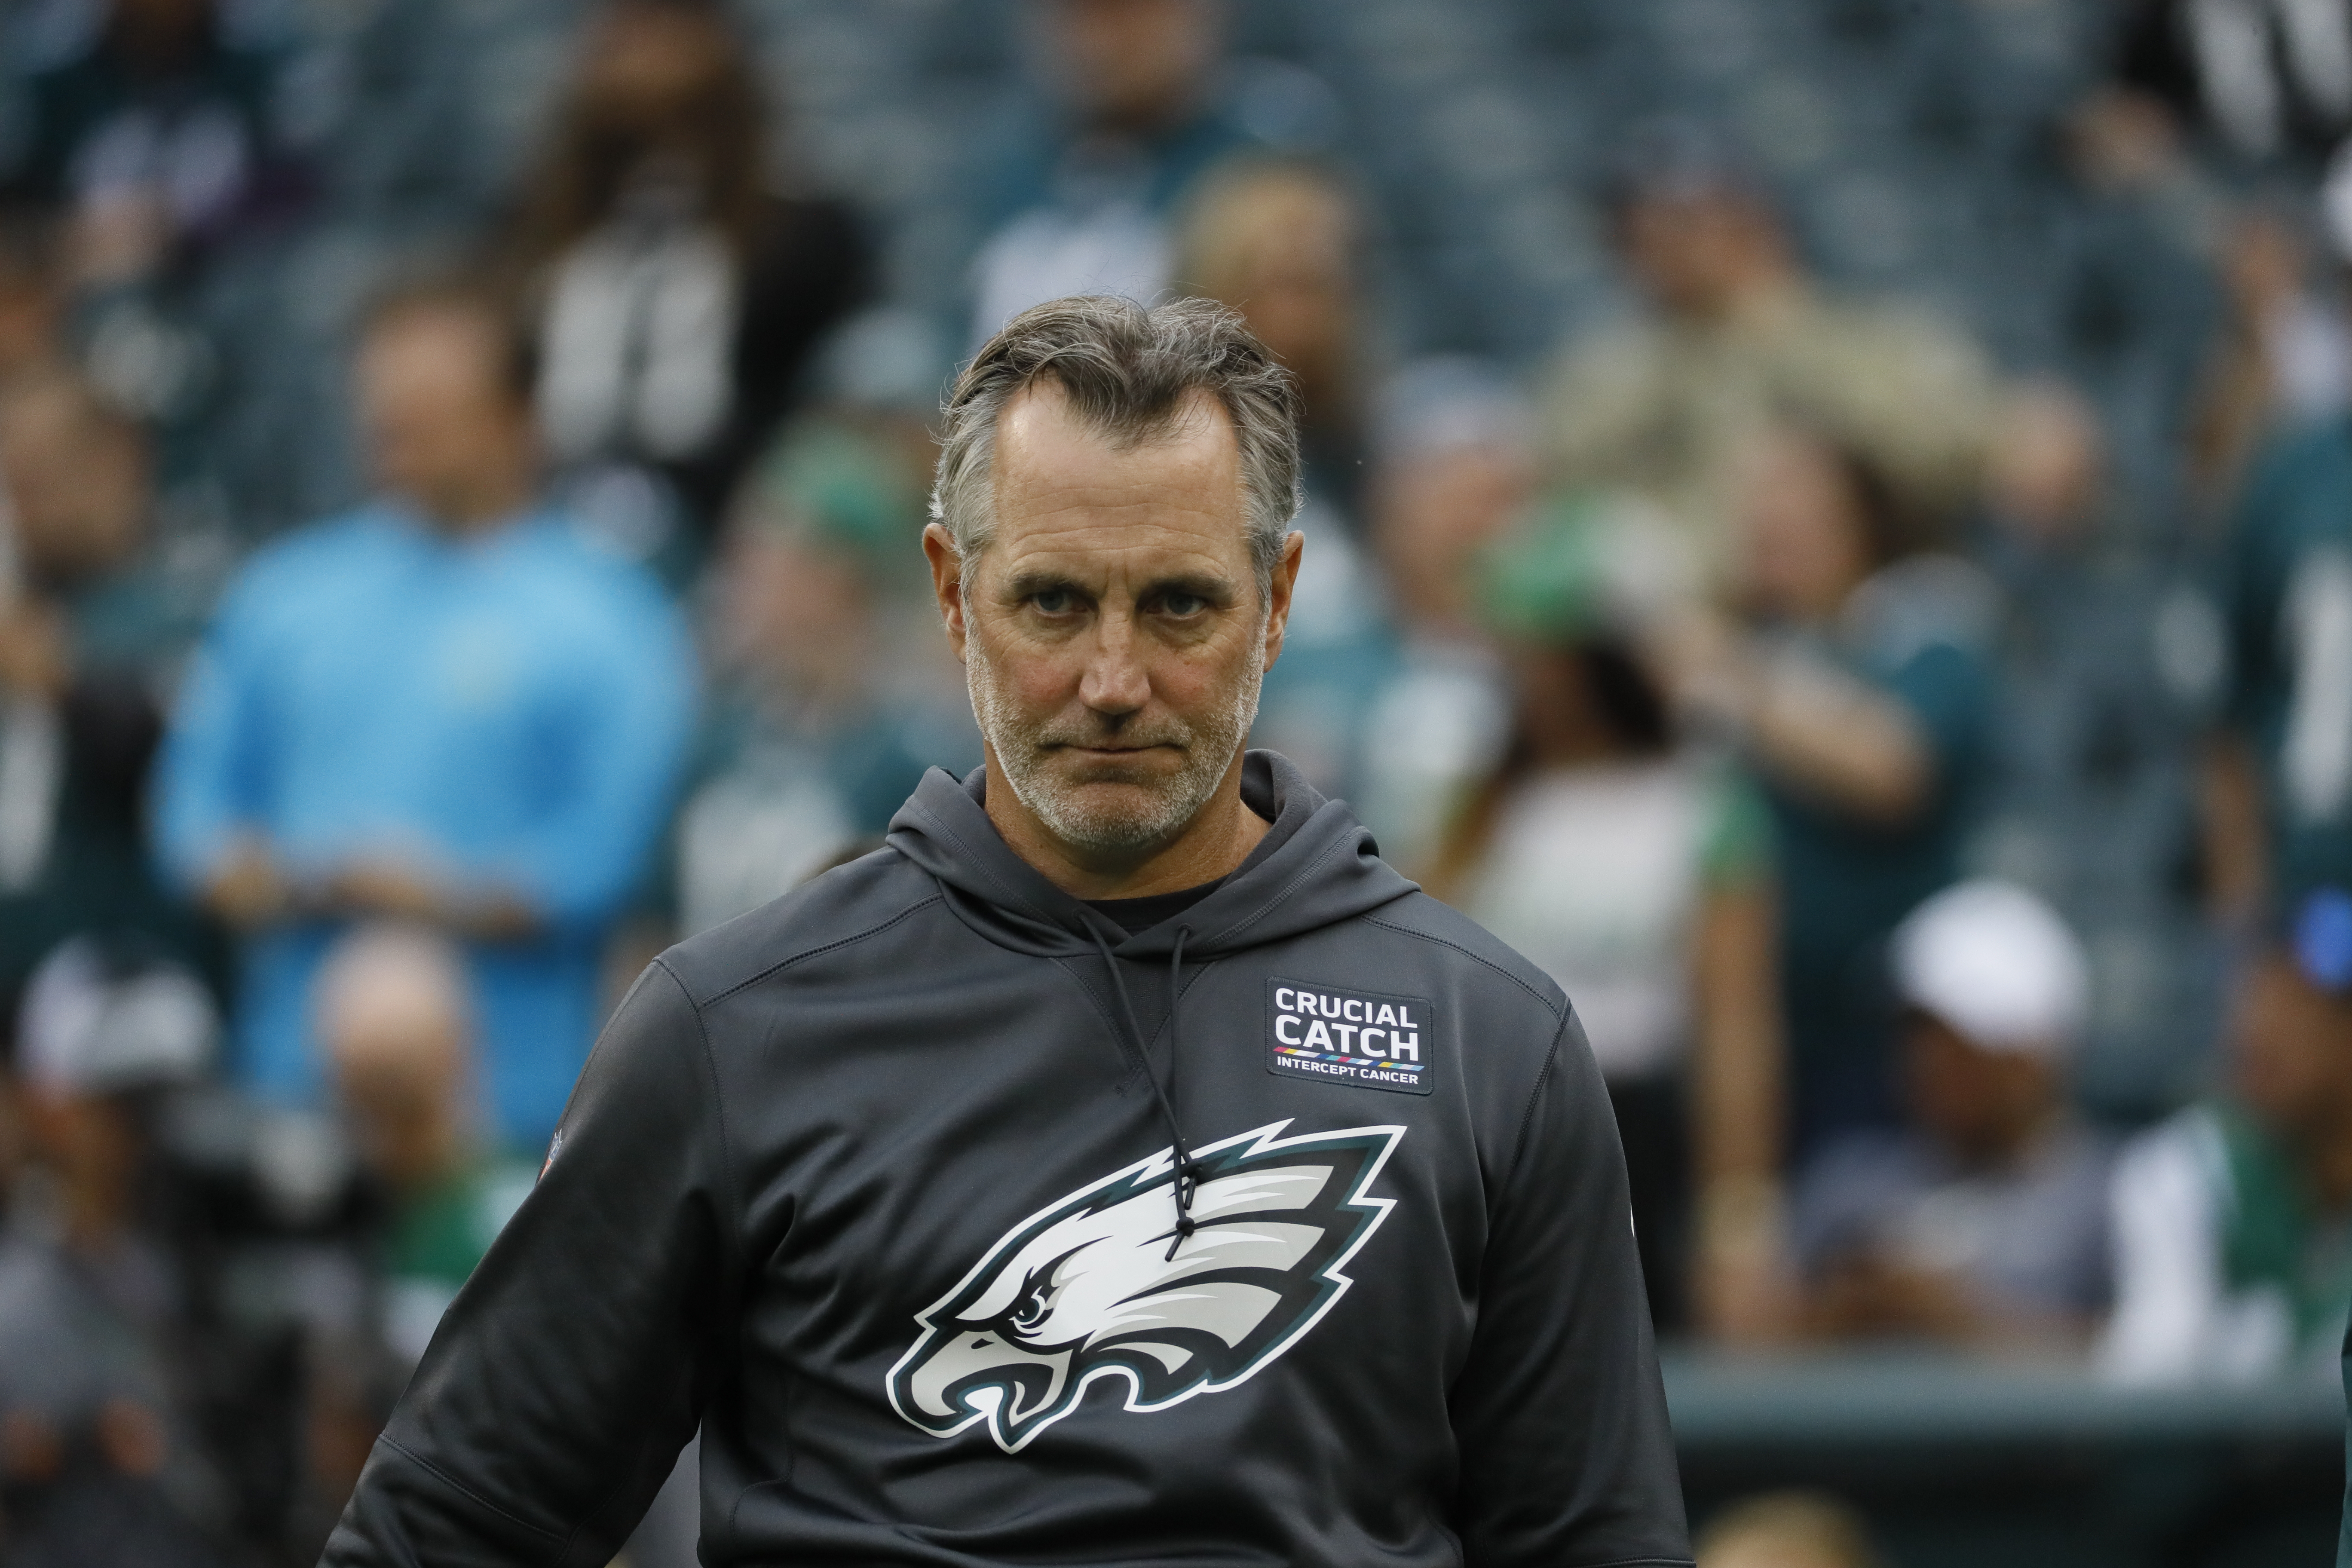 NFL rumors: How can Eagles replace Lions defensive coordinator Cory Undlin? 6 options for defensive backs coach